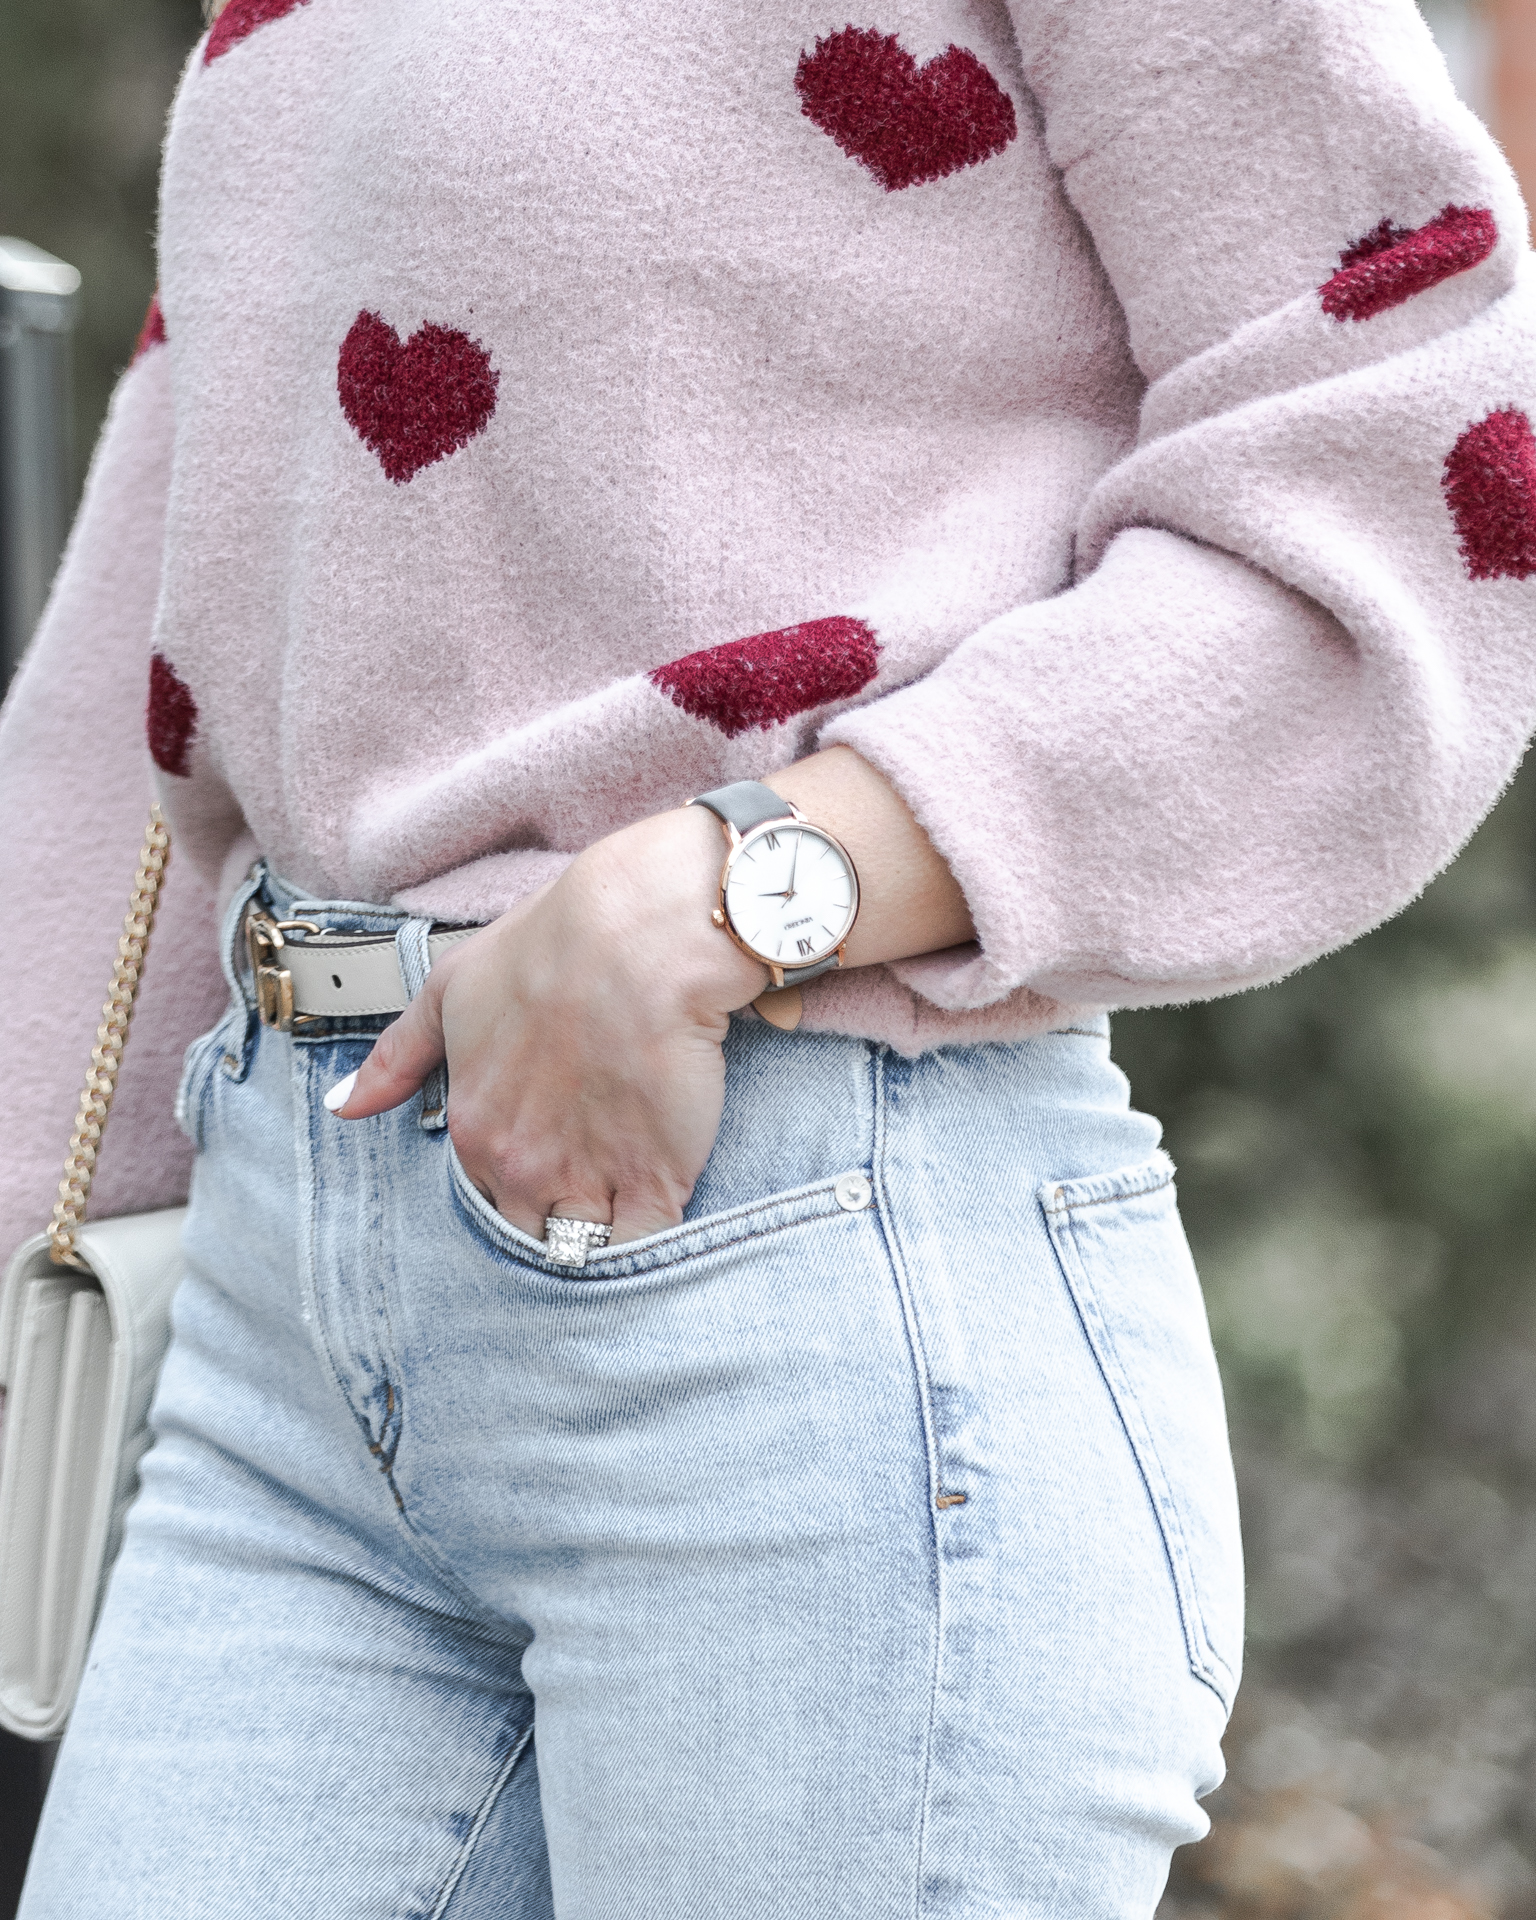 chic-watch-from-vincero-the-glamorous-gal (3)